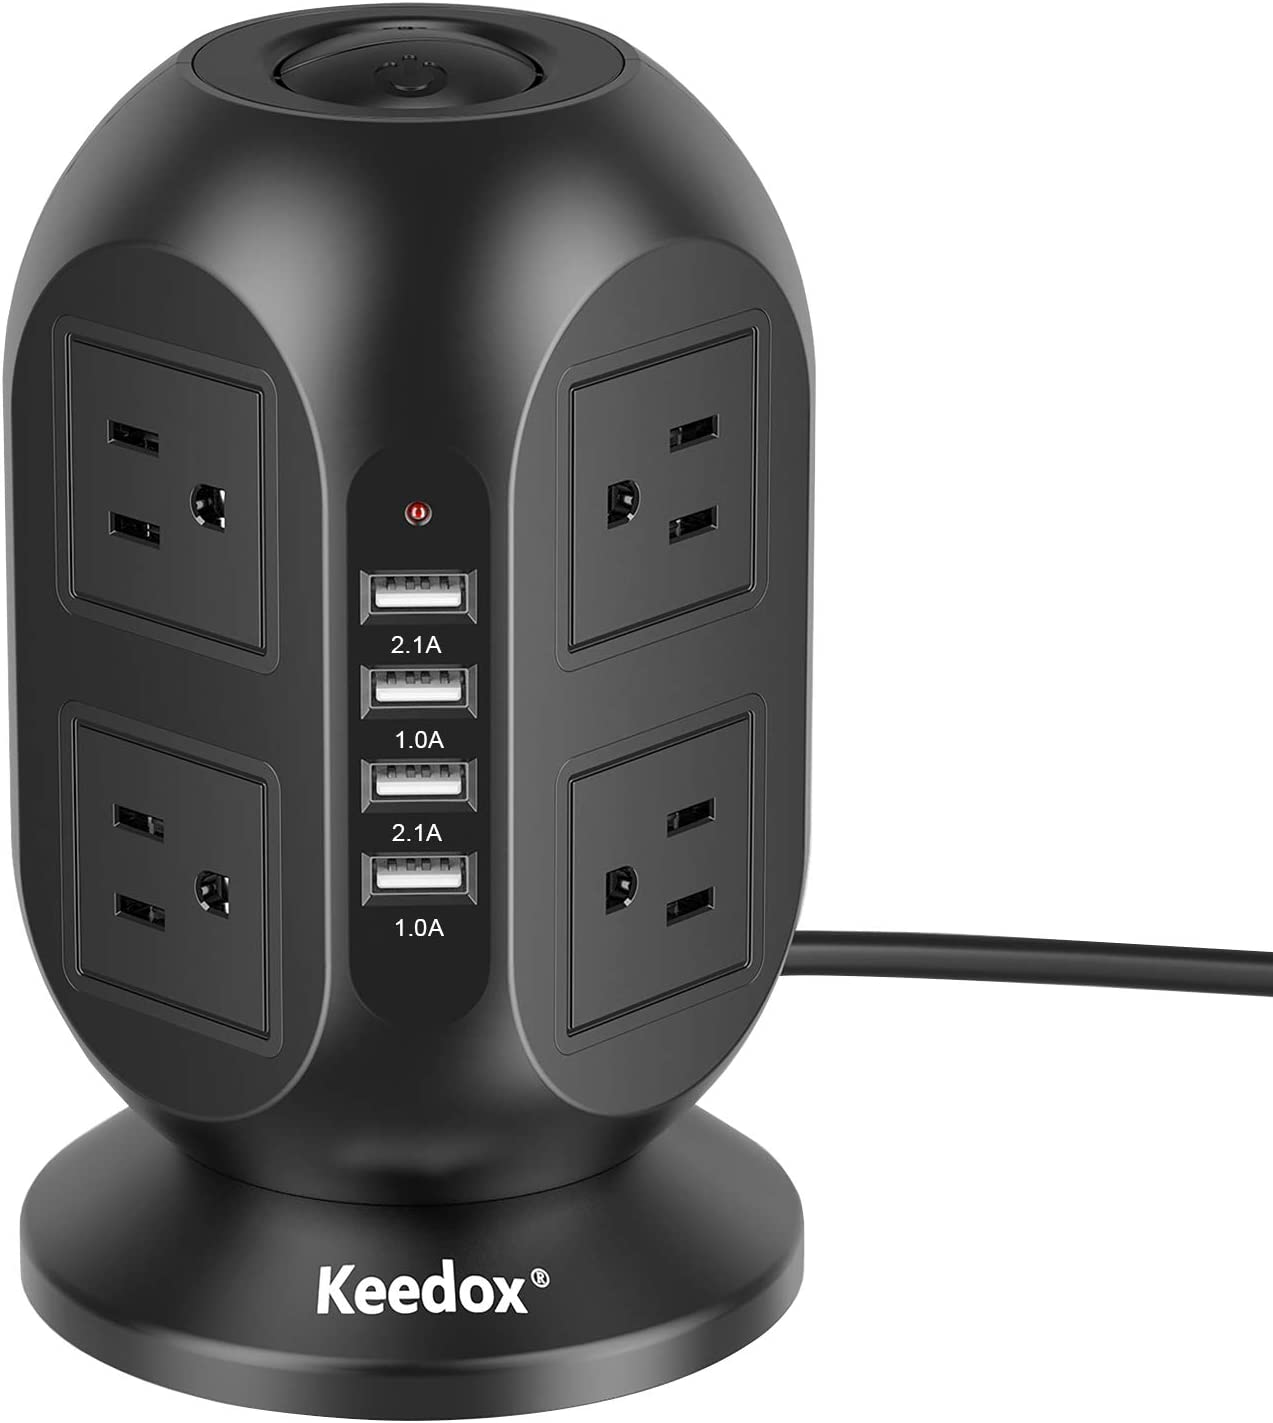 Power Strip Tower Keedox Surge Protector 8 Outlet 4 USB Ports Electric Charging Station, Multi Plug Outlet Tower with 10Ft Long Extension Cord